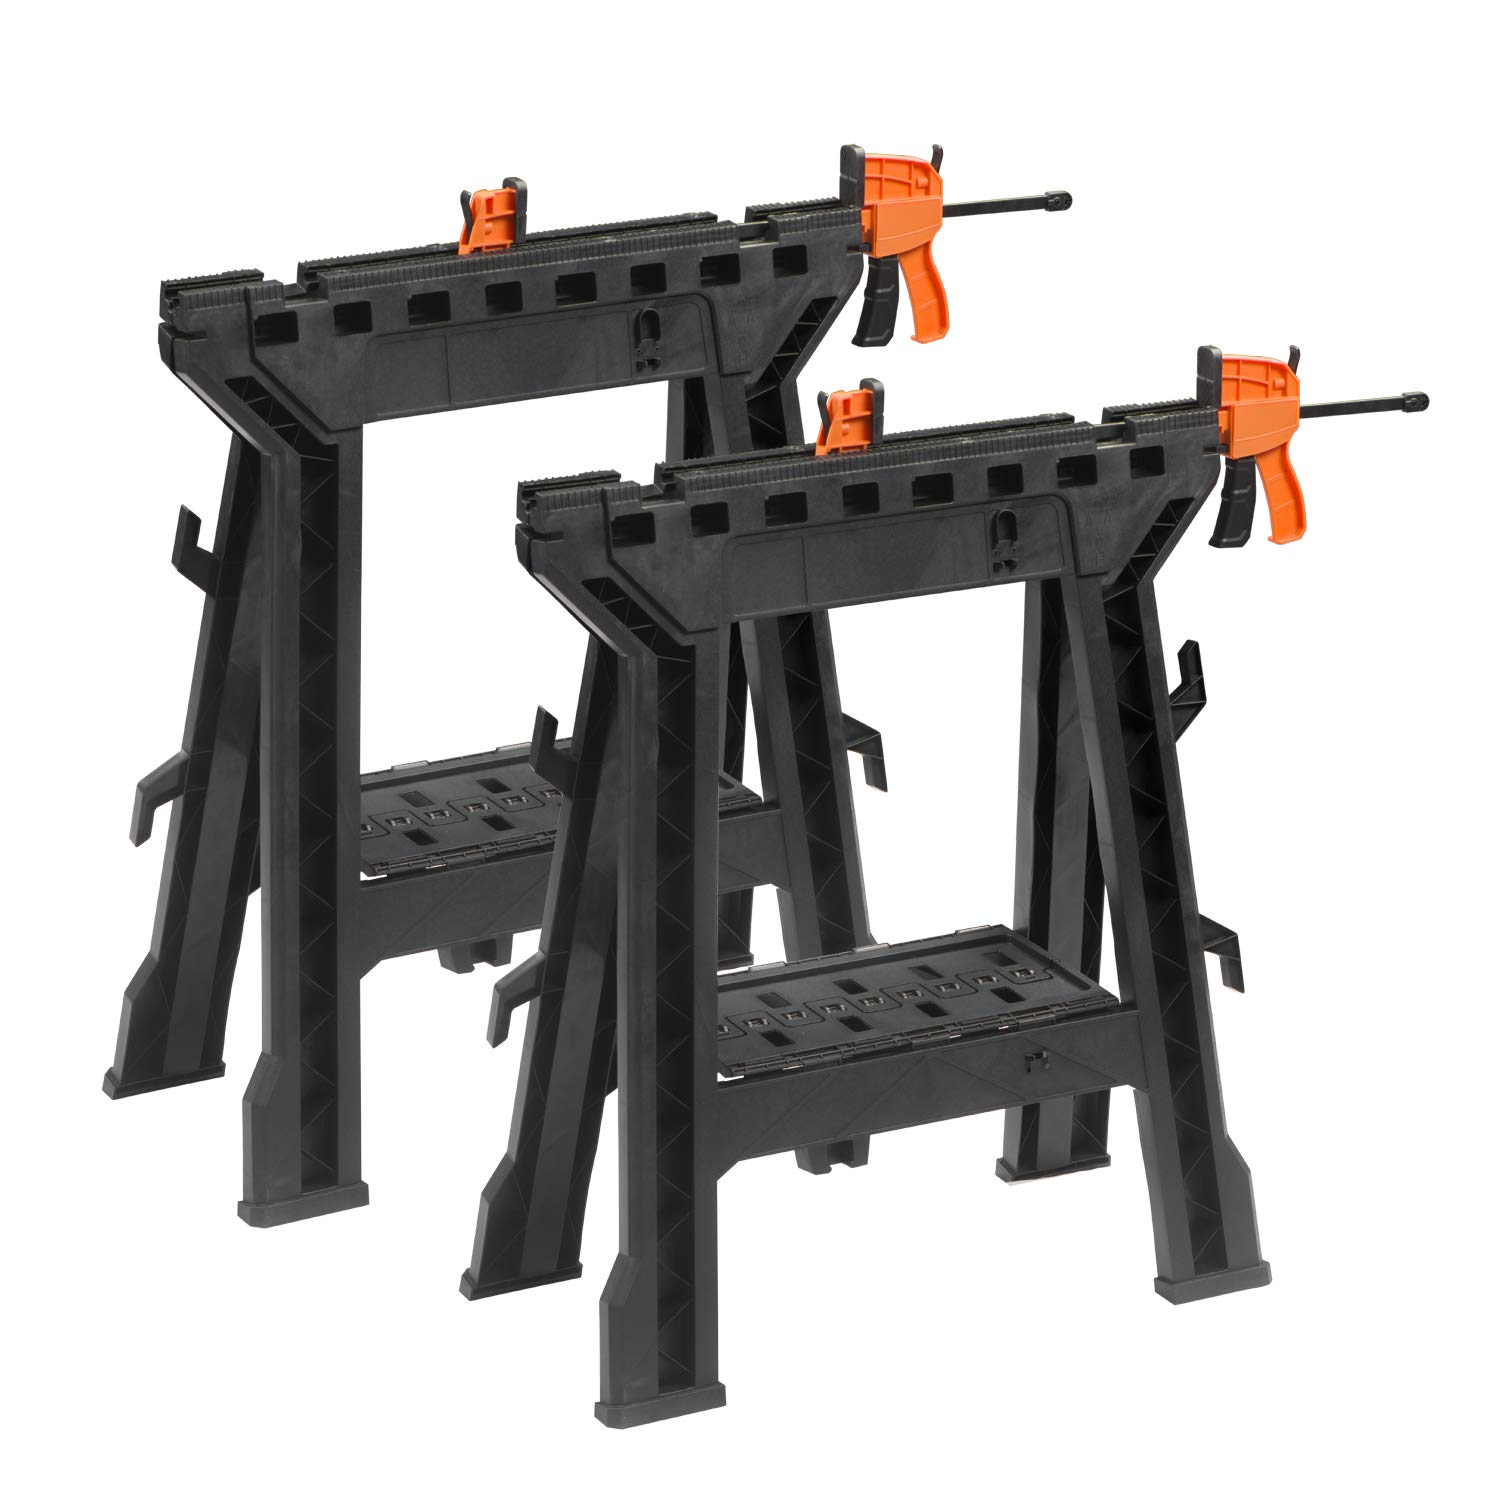 Ainfox 2Pcs Clamping Sawhorse, Folding Adjustable Clamping Sawhorses with Bar Clamps Built-in Shelf and Cord Hooks